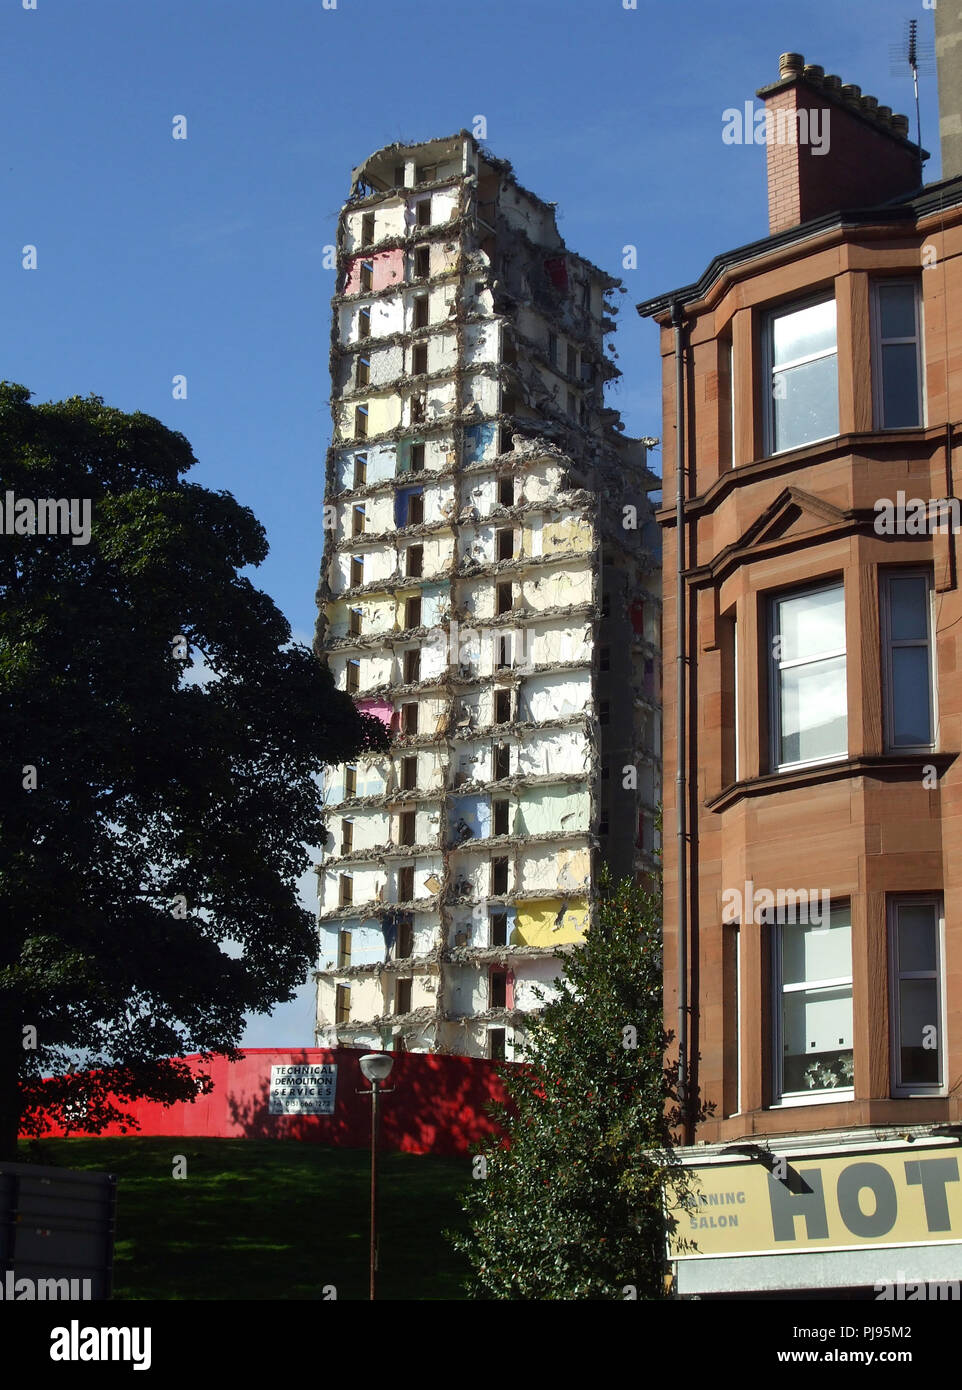 A partially demolished high rise block of flats standing next to a red  sandstone tenement building in Glasgow. - Stock Image